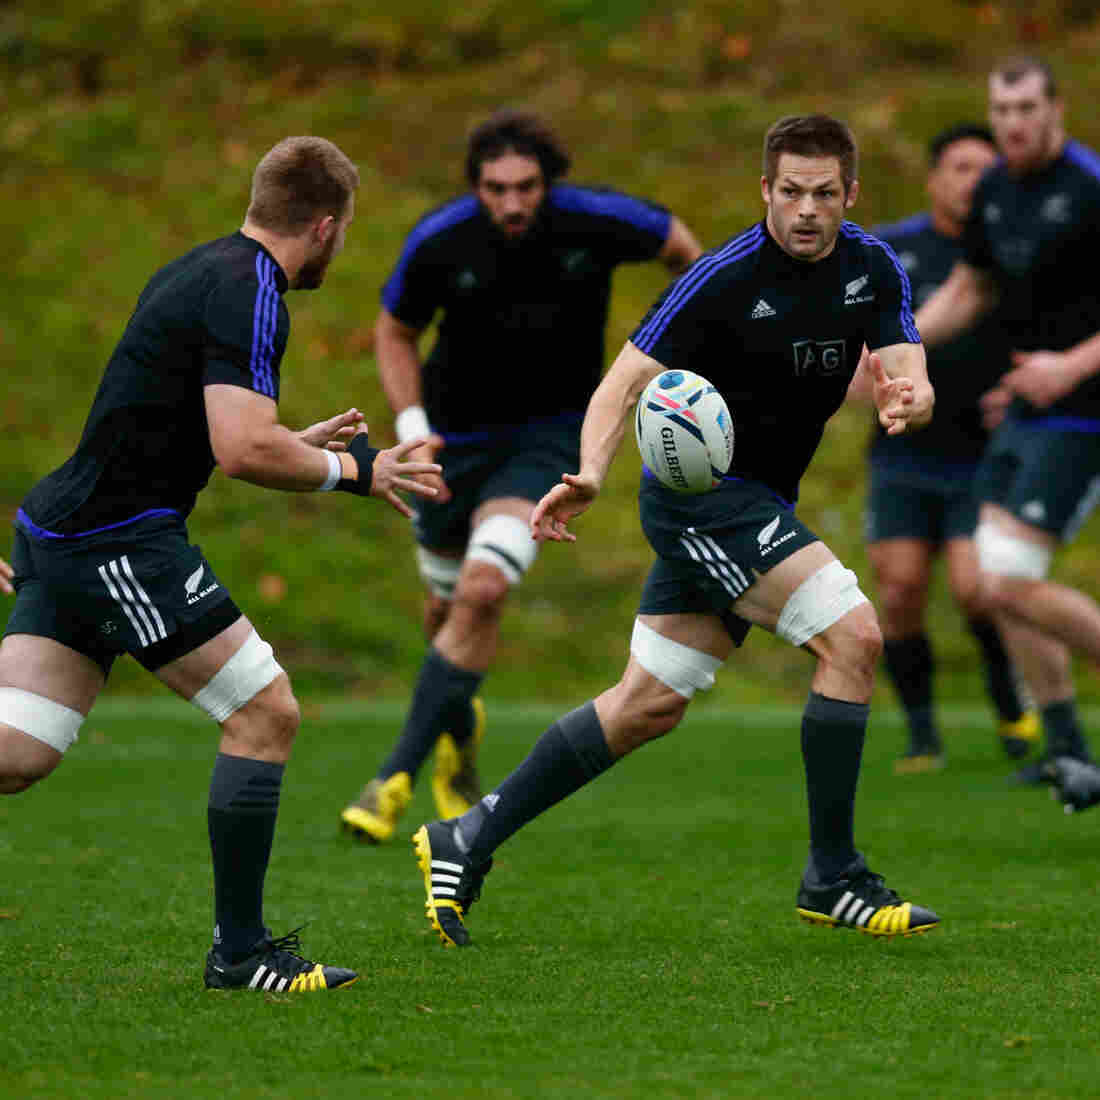 Richie McCaw of the All Blacks passes during a New Zealand training session on Friday in preparation for the World Cup final on Saturday.